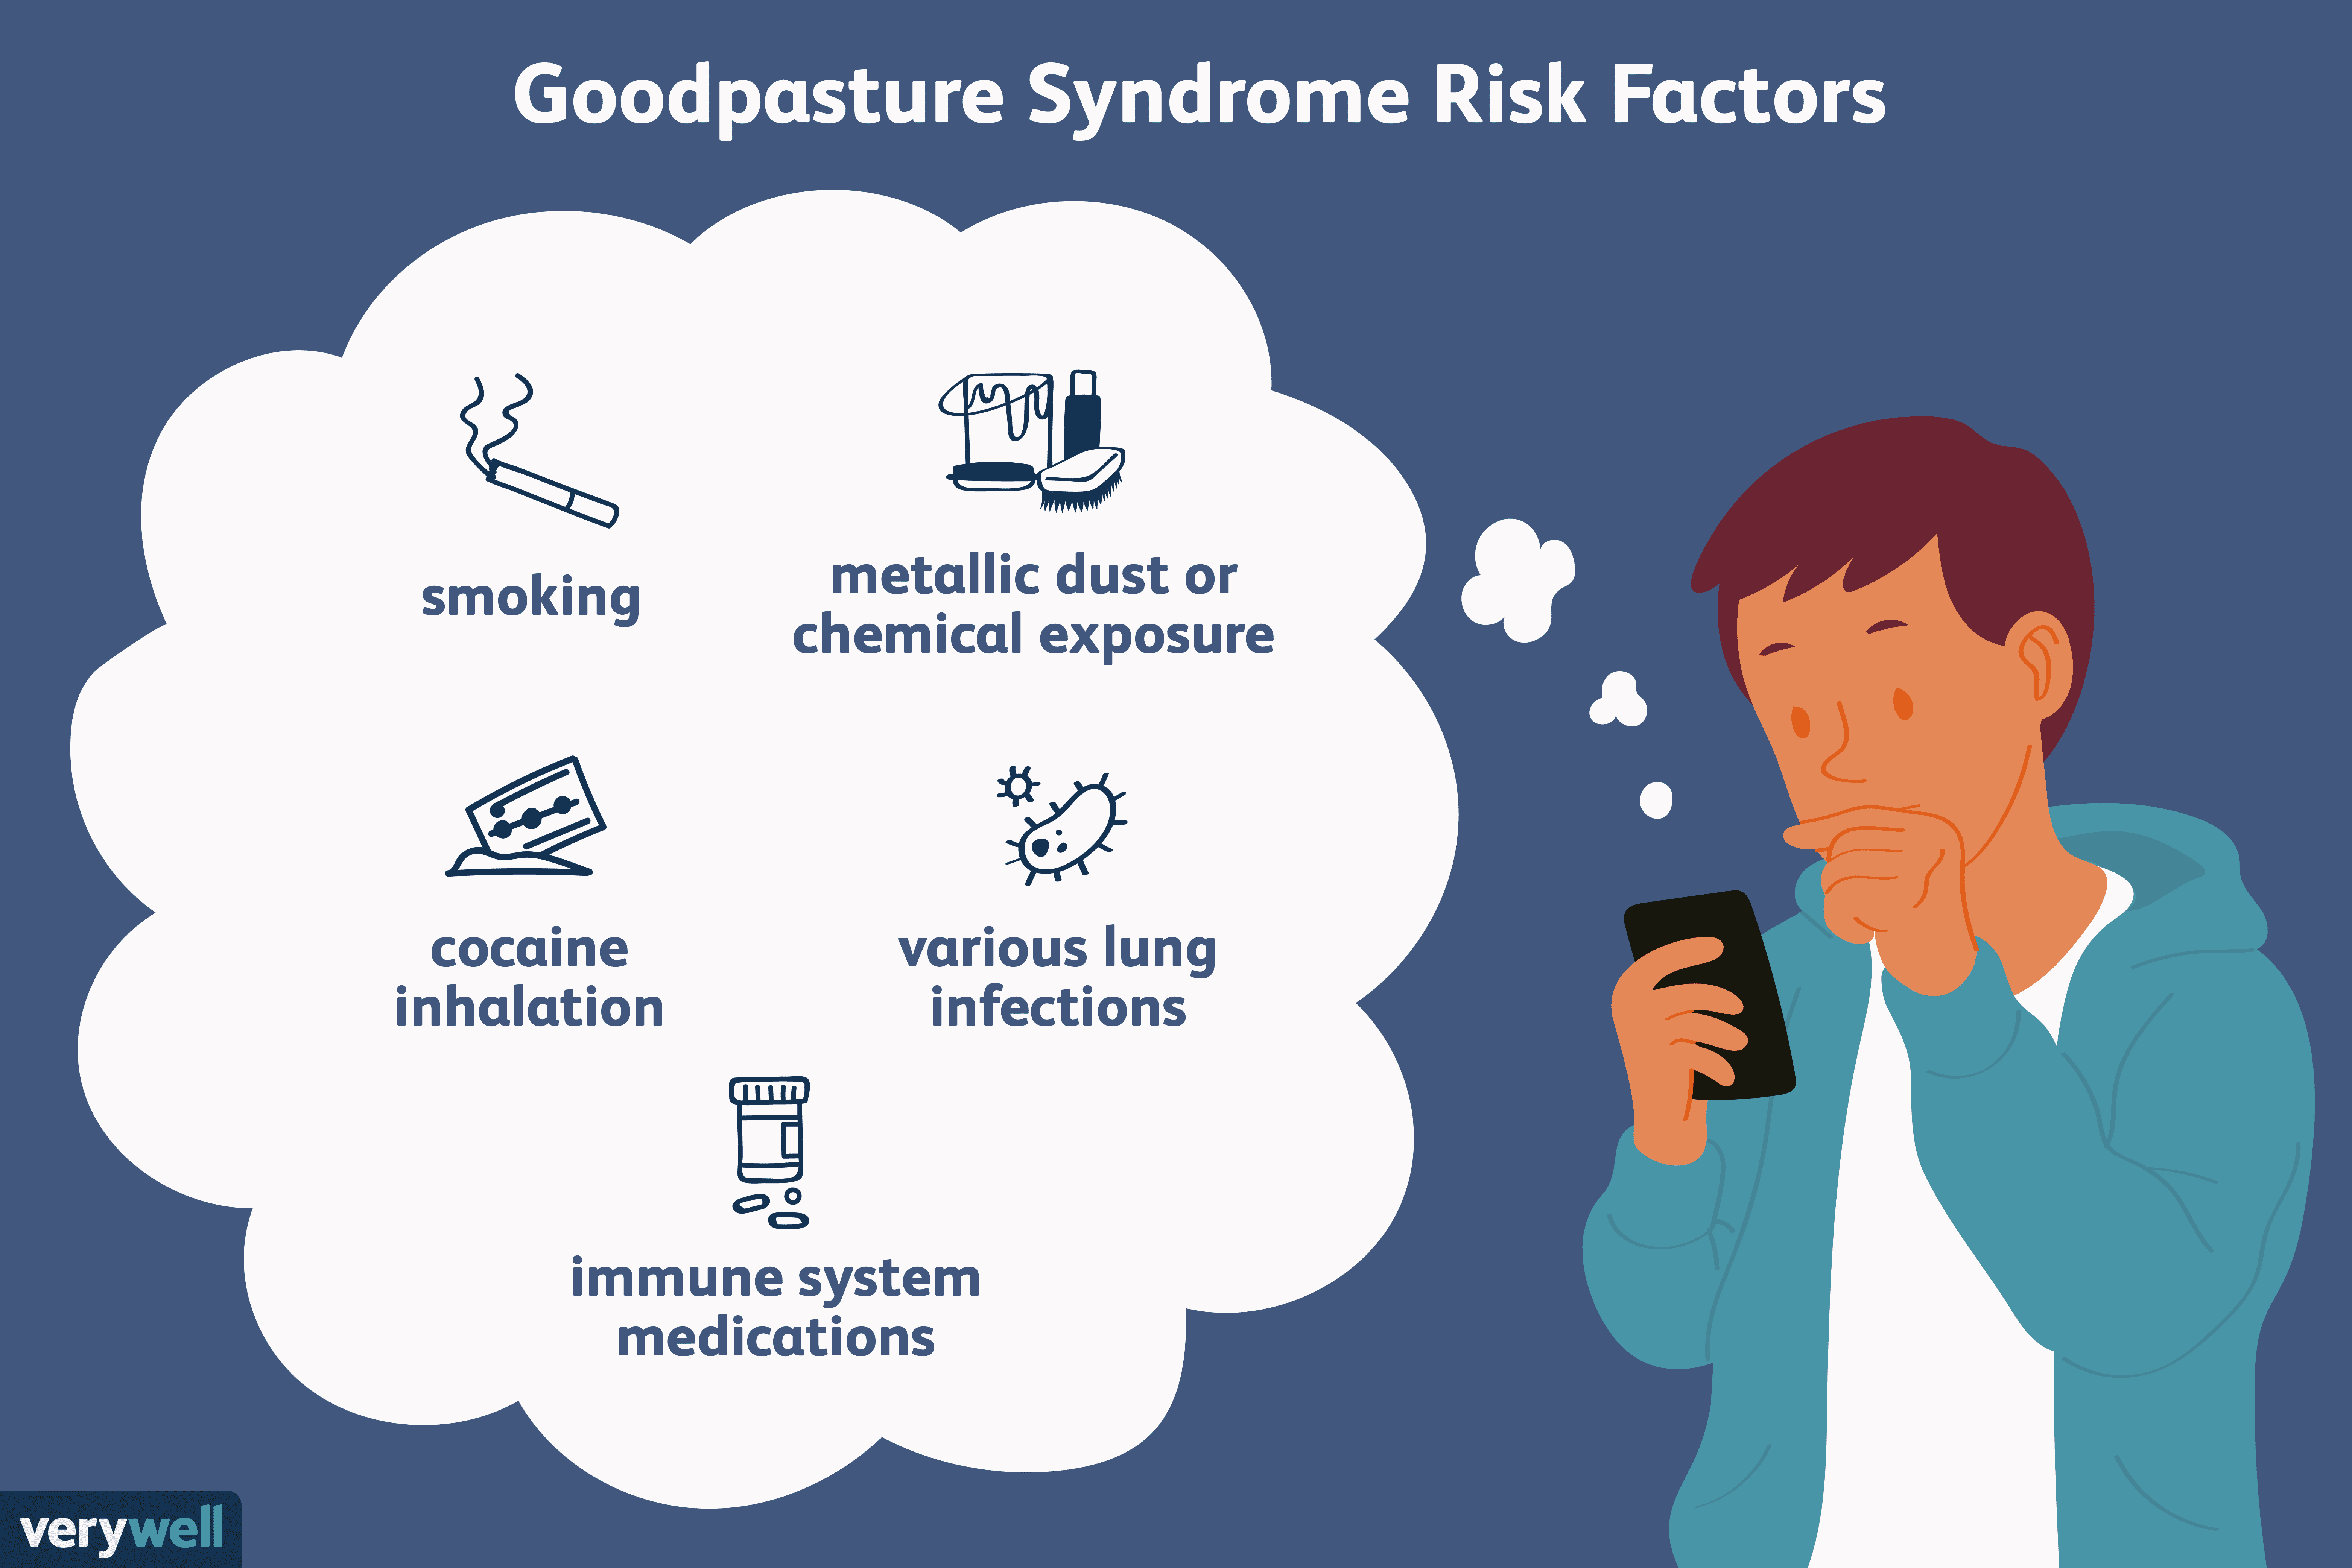 Goodpasture Syndrome Disease Of The Lungs And Kidneys